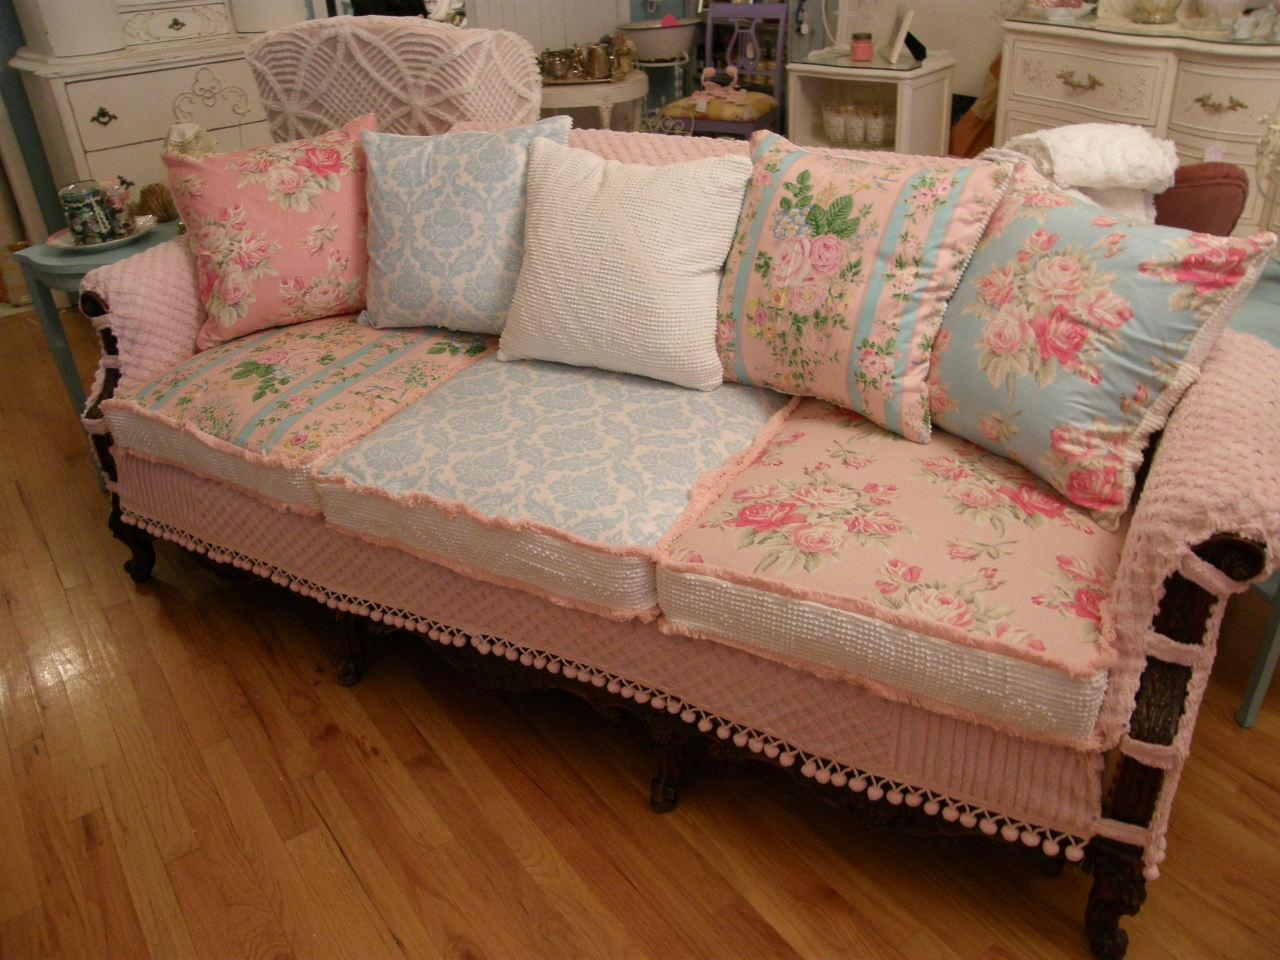 sofa and chairs ultra light transport chair walgreens 20 top country cottage sofas ideas